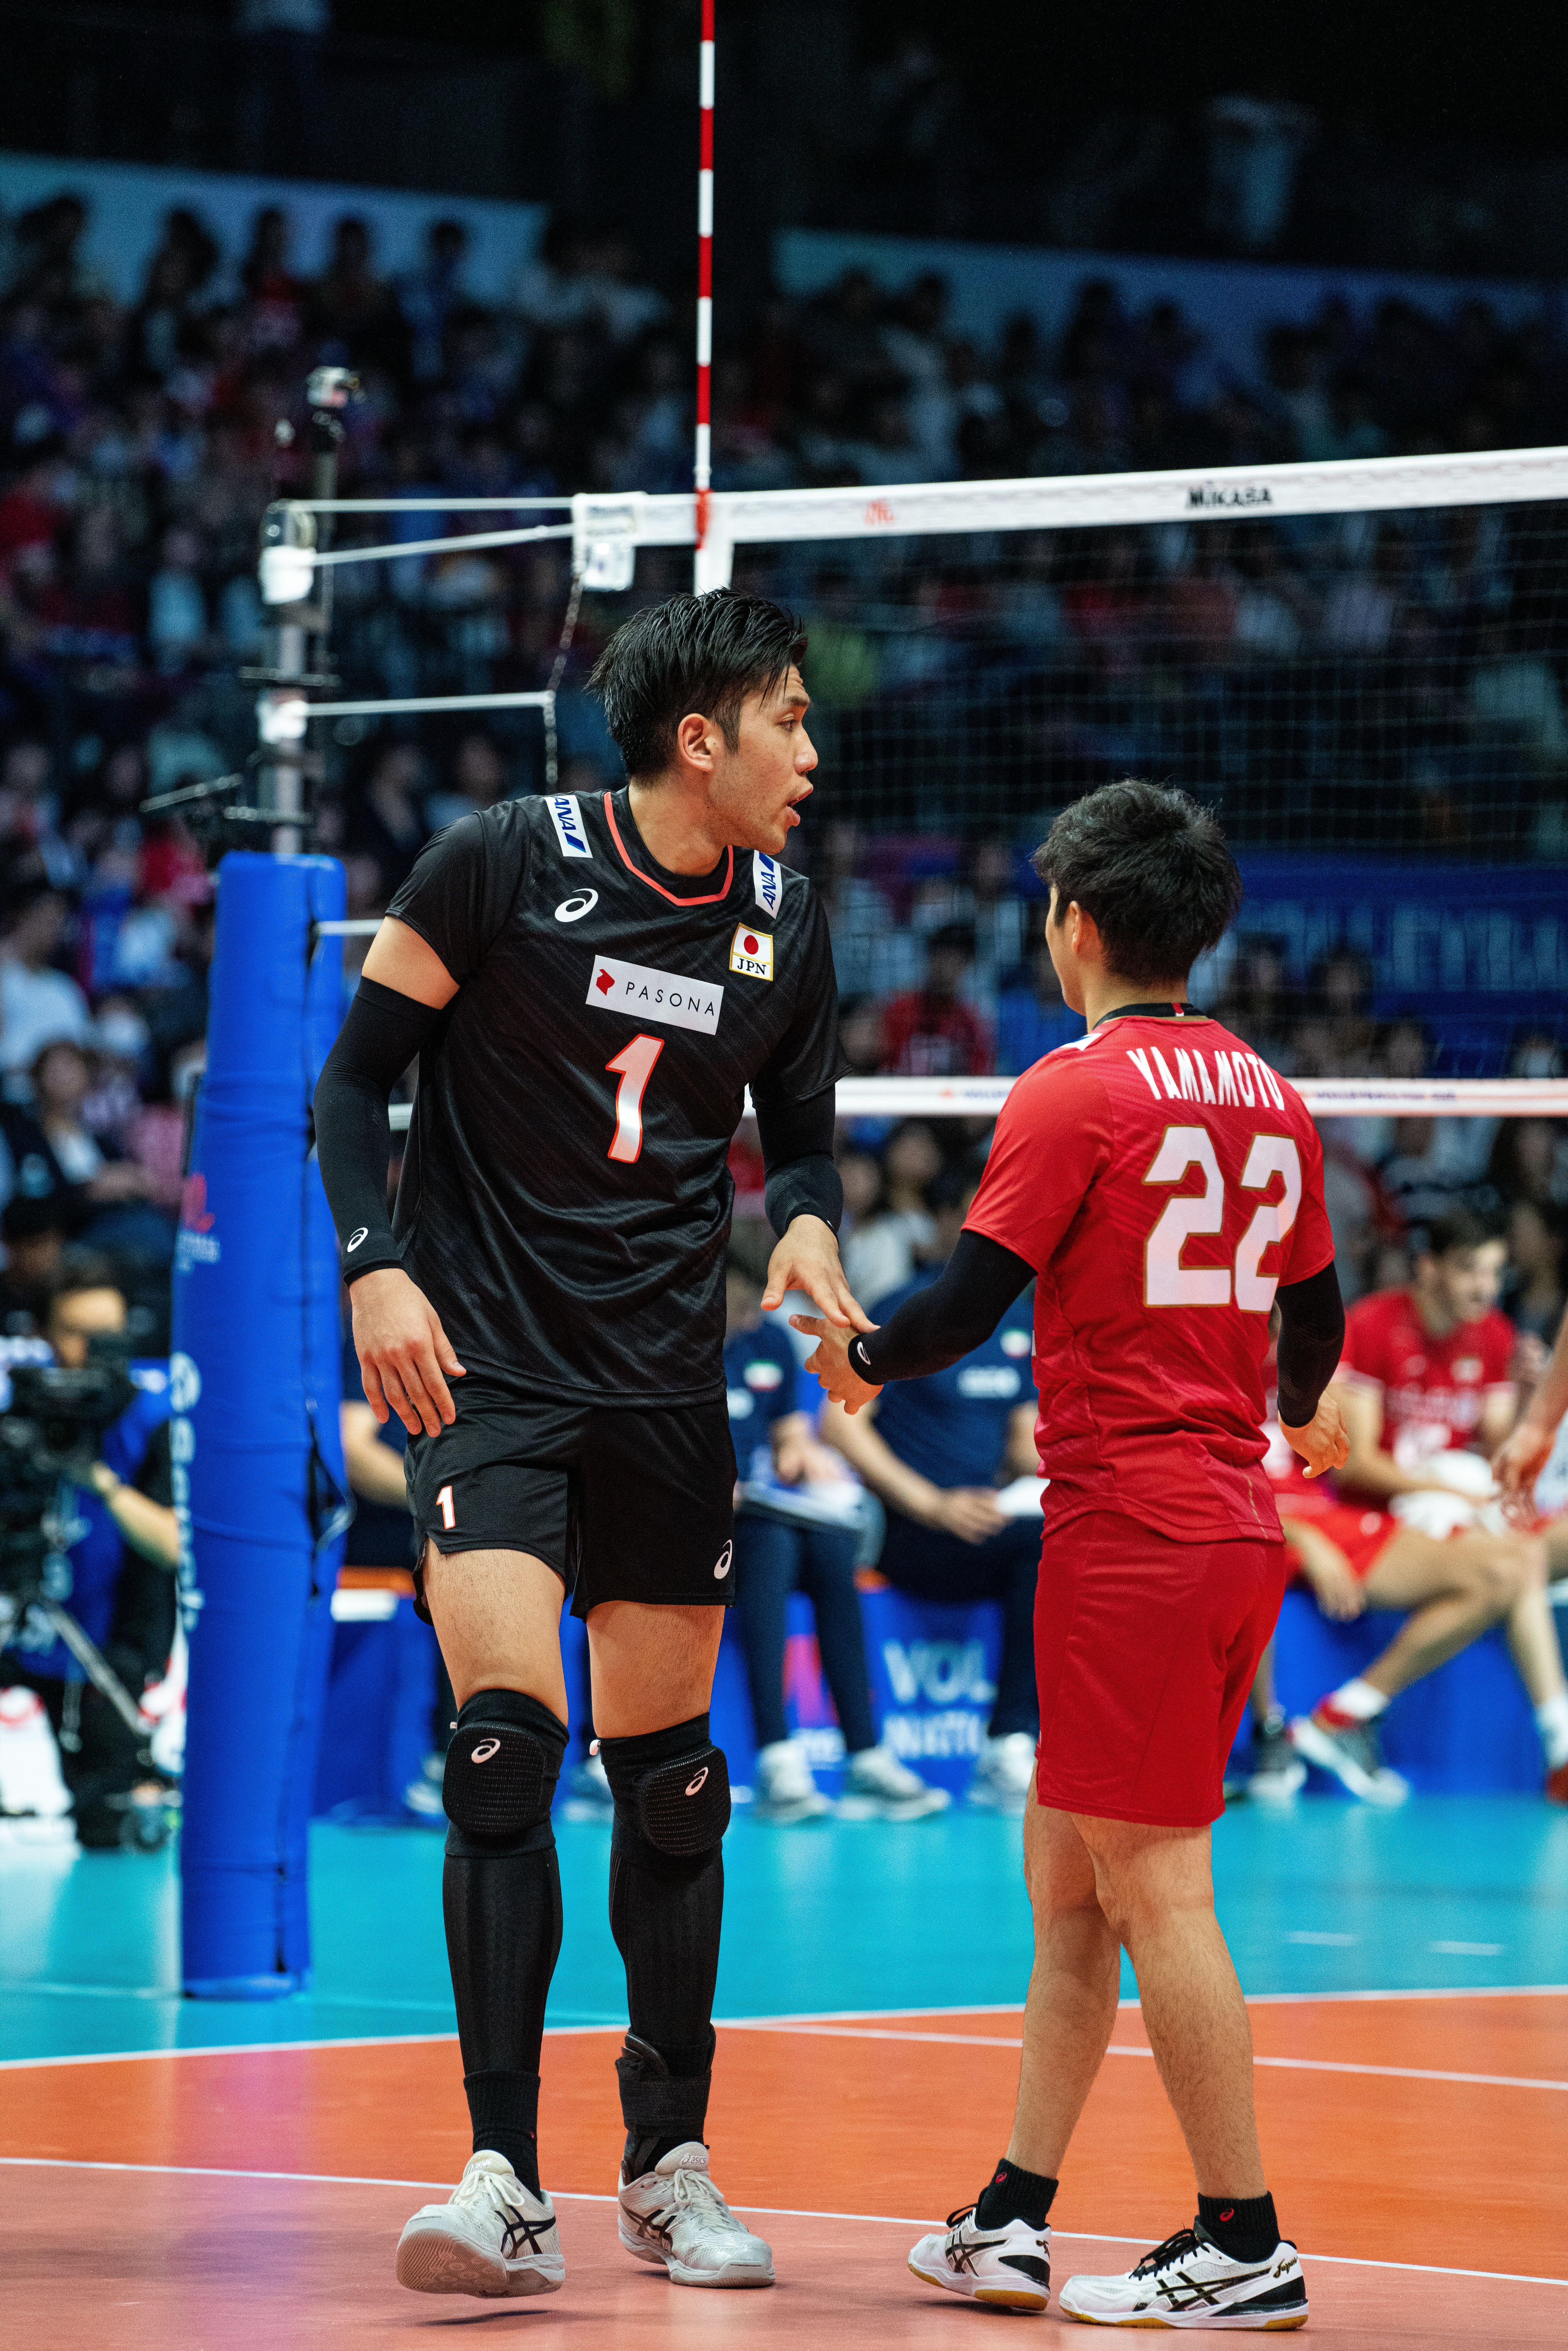 Pin On Japan Volleyball Team